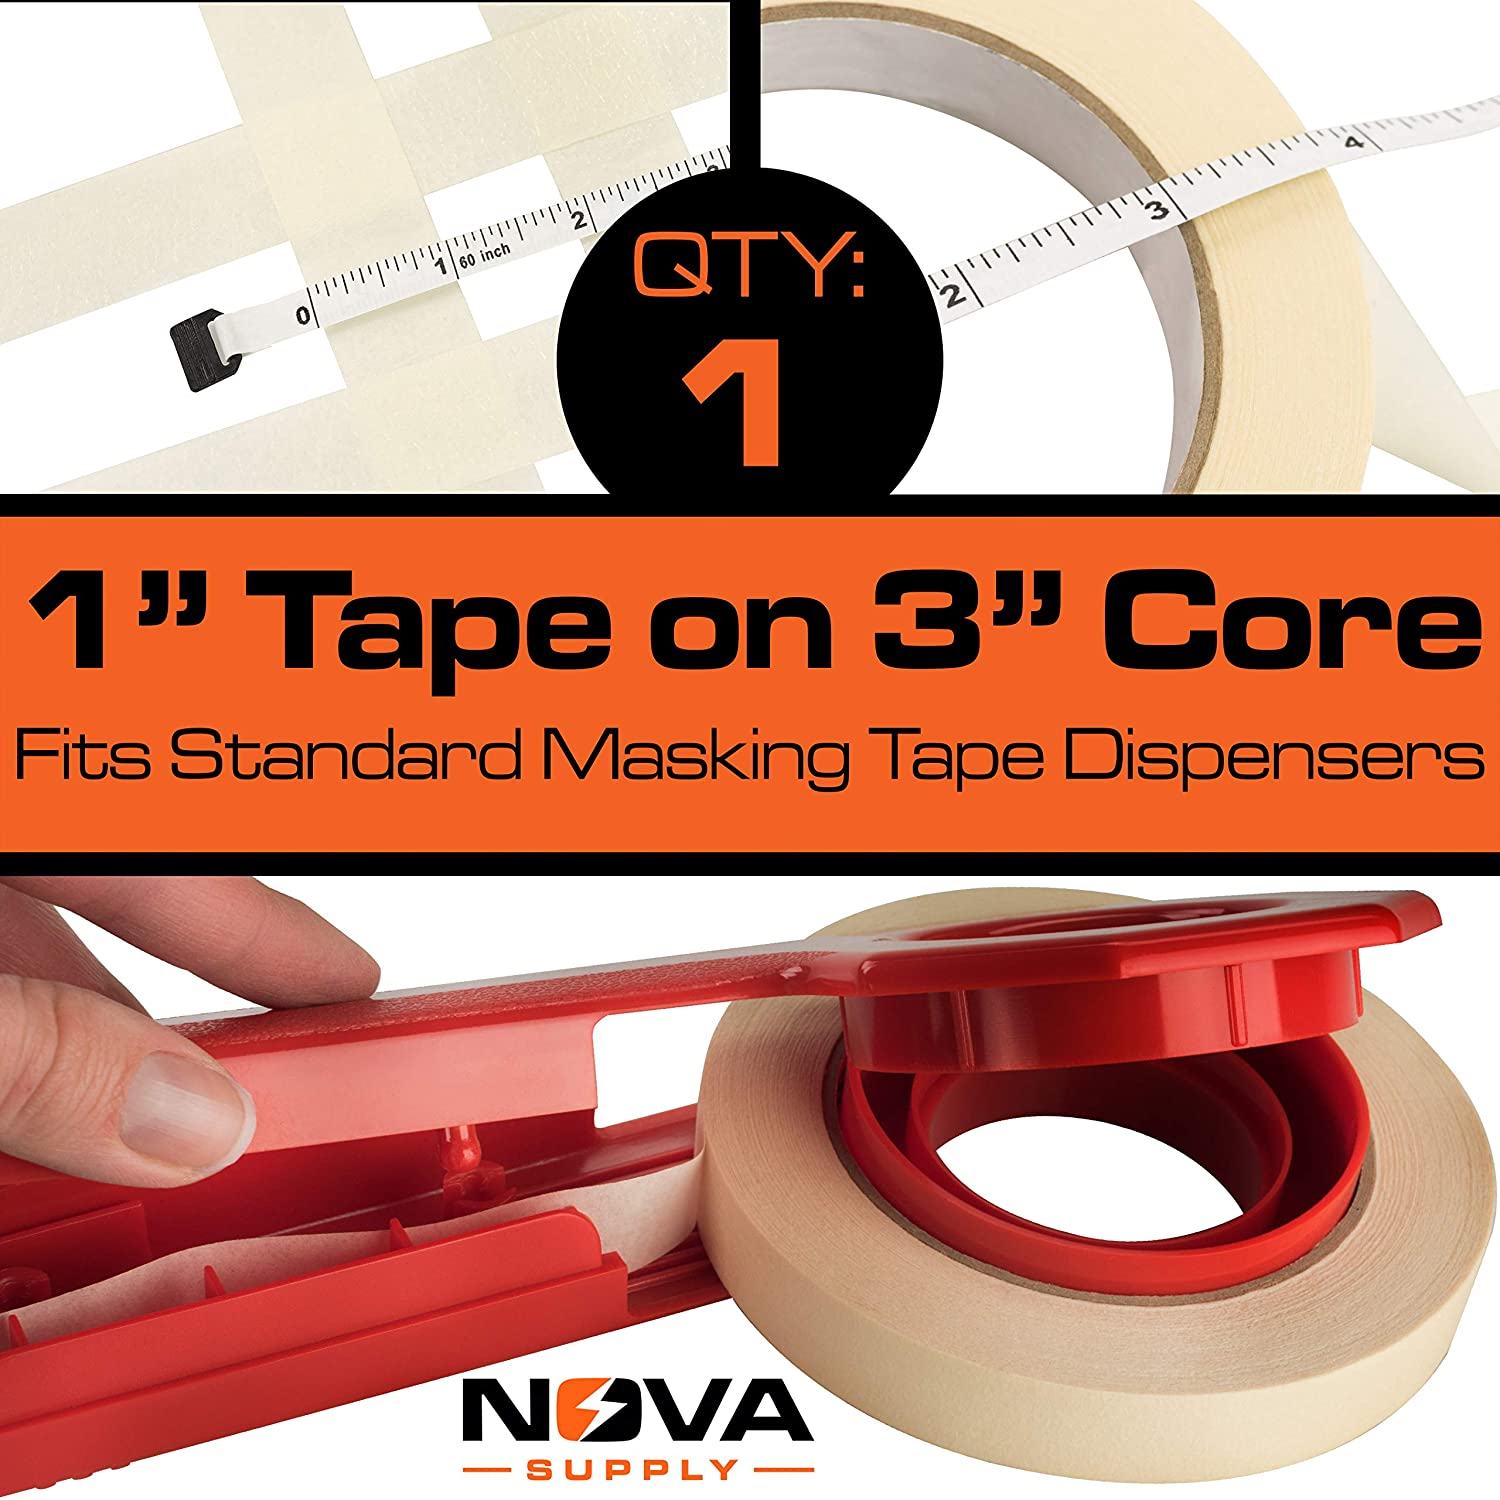 Easy-Tear 60 Yard Masking Tape 2 Pk Office or Commercial Contractor Drip-Free Painting with Wide Crepe Paper Rolls No-Residue 1 Inch Clean Pro-Grade Removable Painters Tape Great for Home